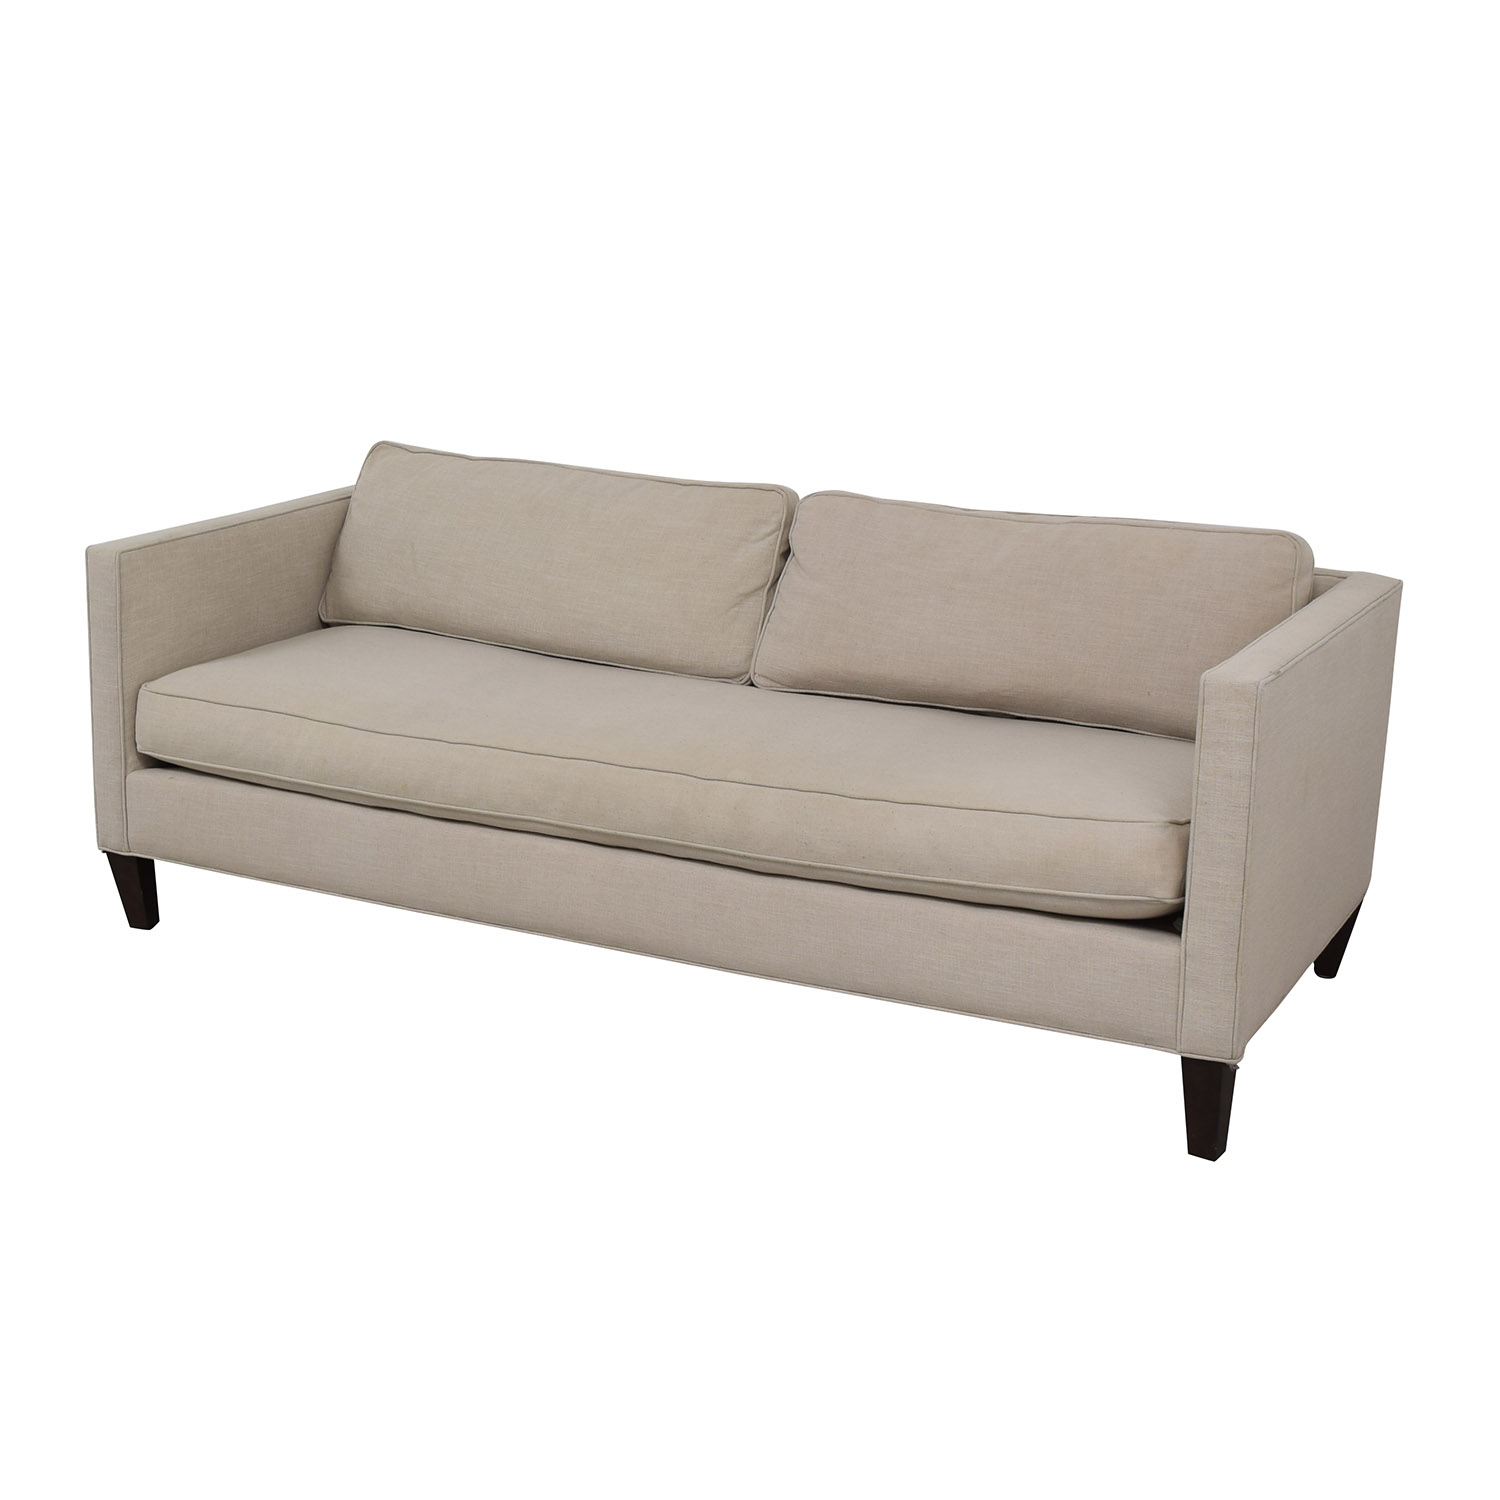 dunham sofa modern seattle 75 off west elm linen weave natural